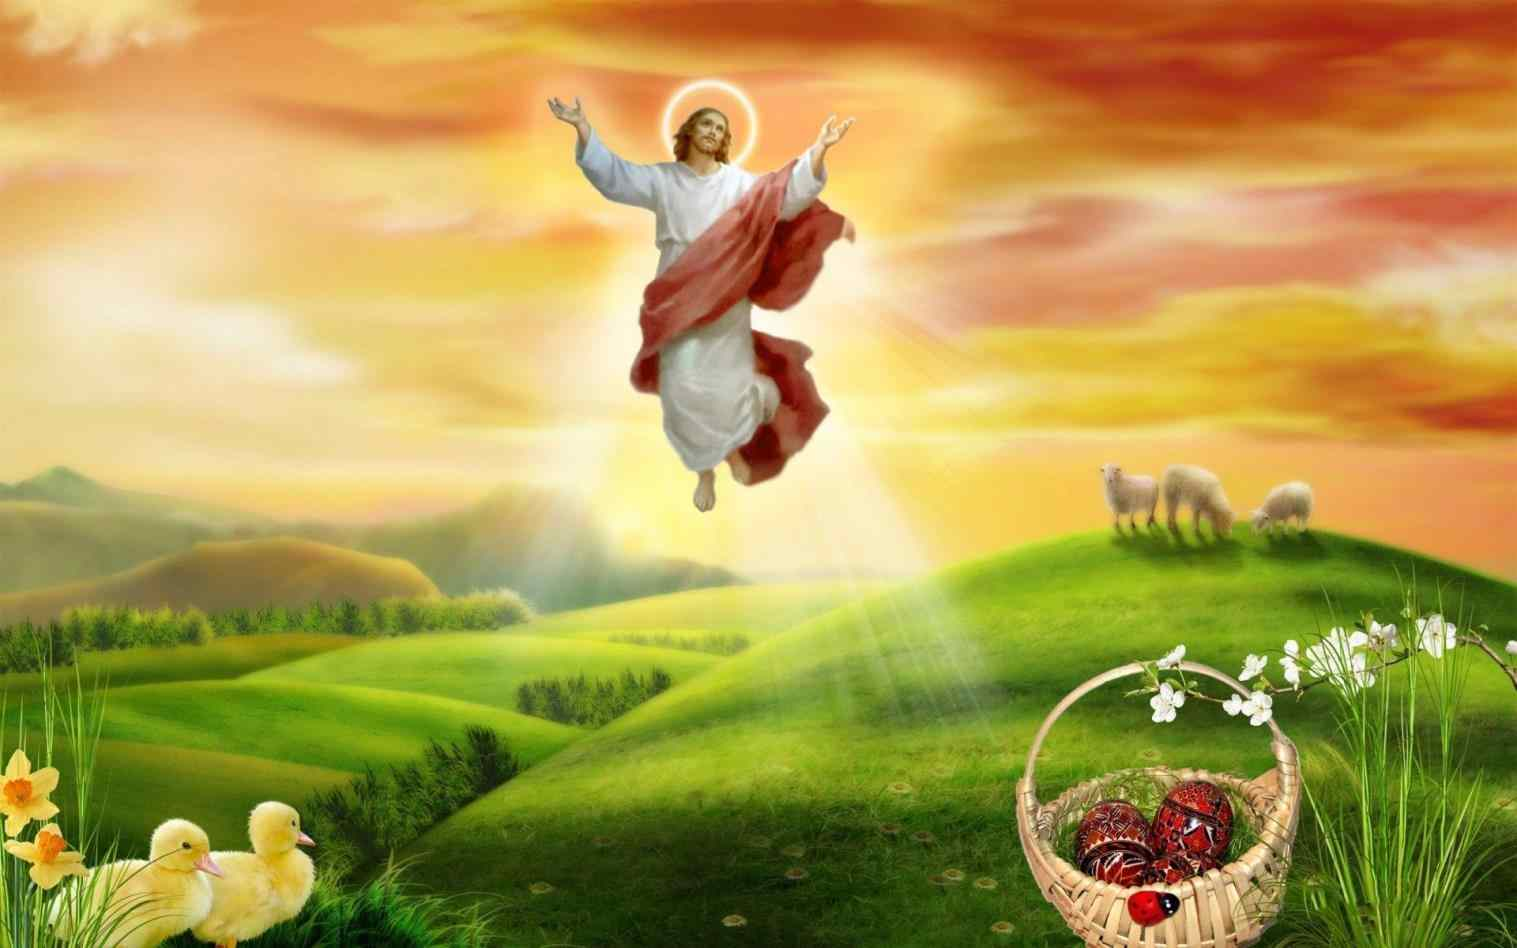 Happy Religious Easter Wallpaper Images Pictures 1517x948